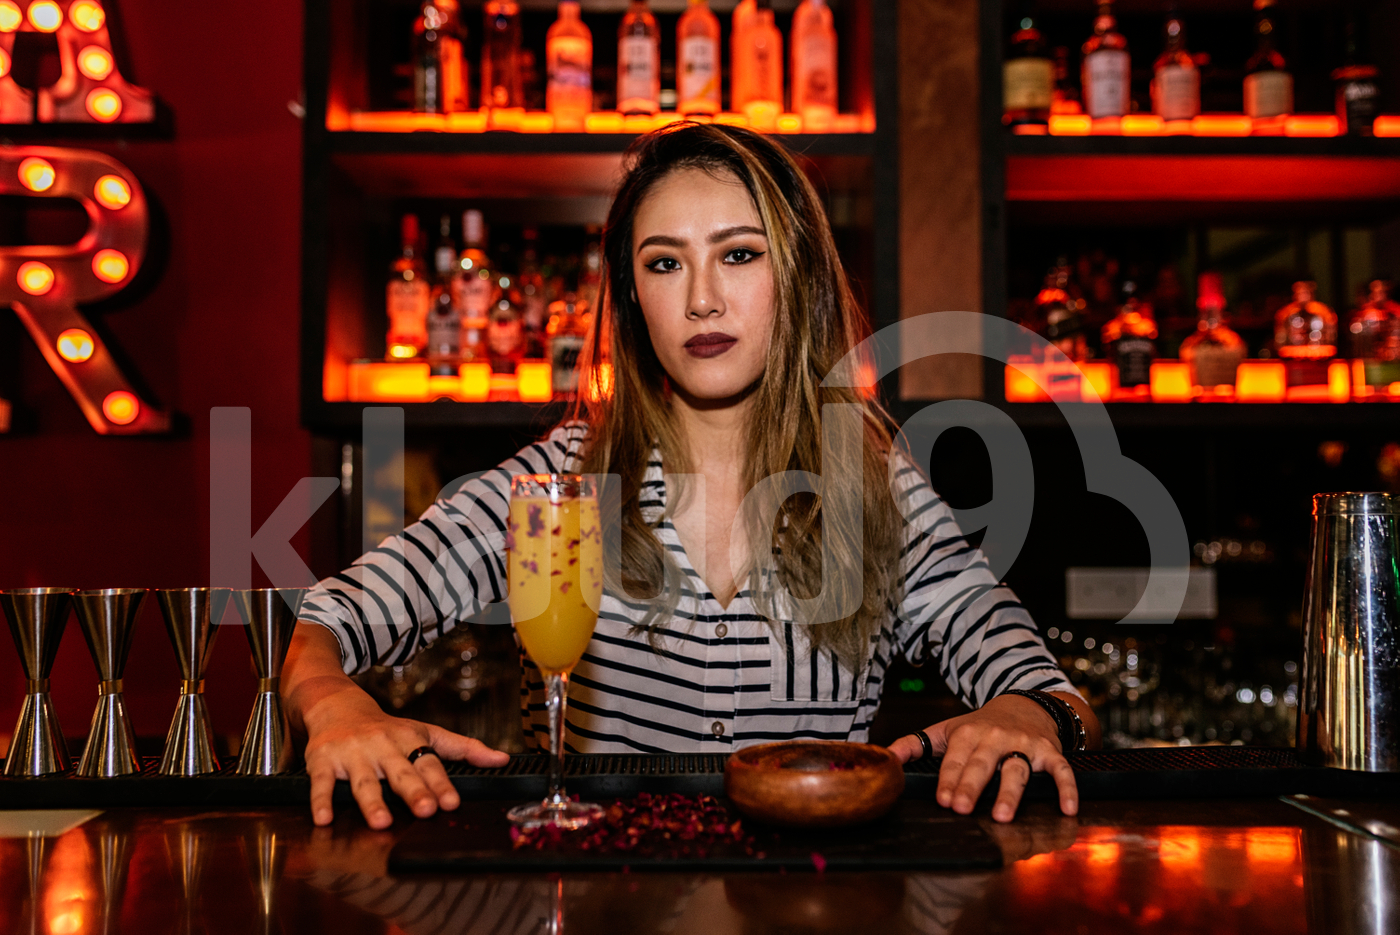 Portrait of female Asian bartender posing with a drink